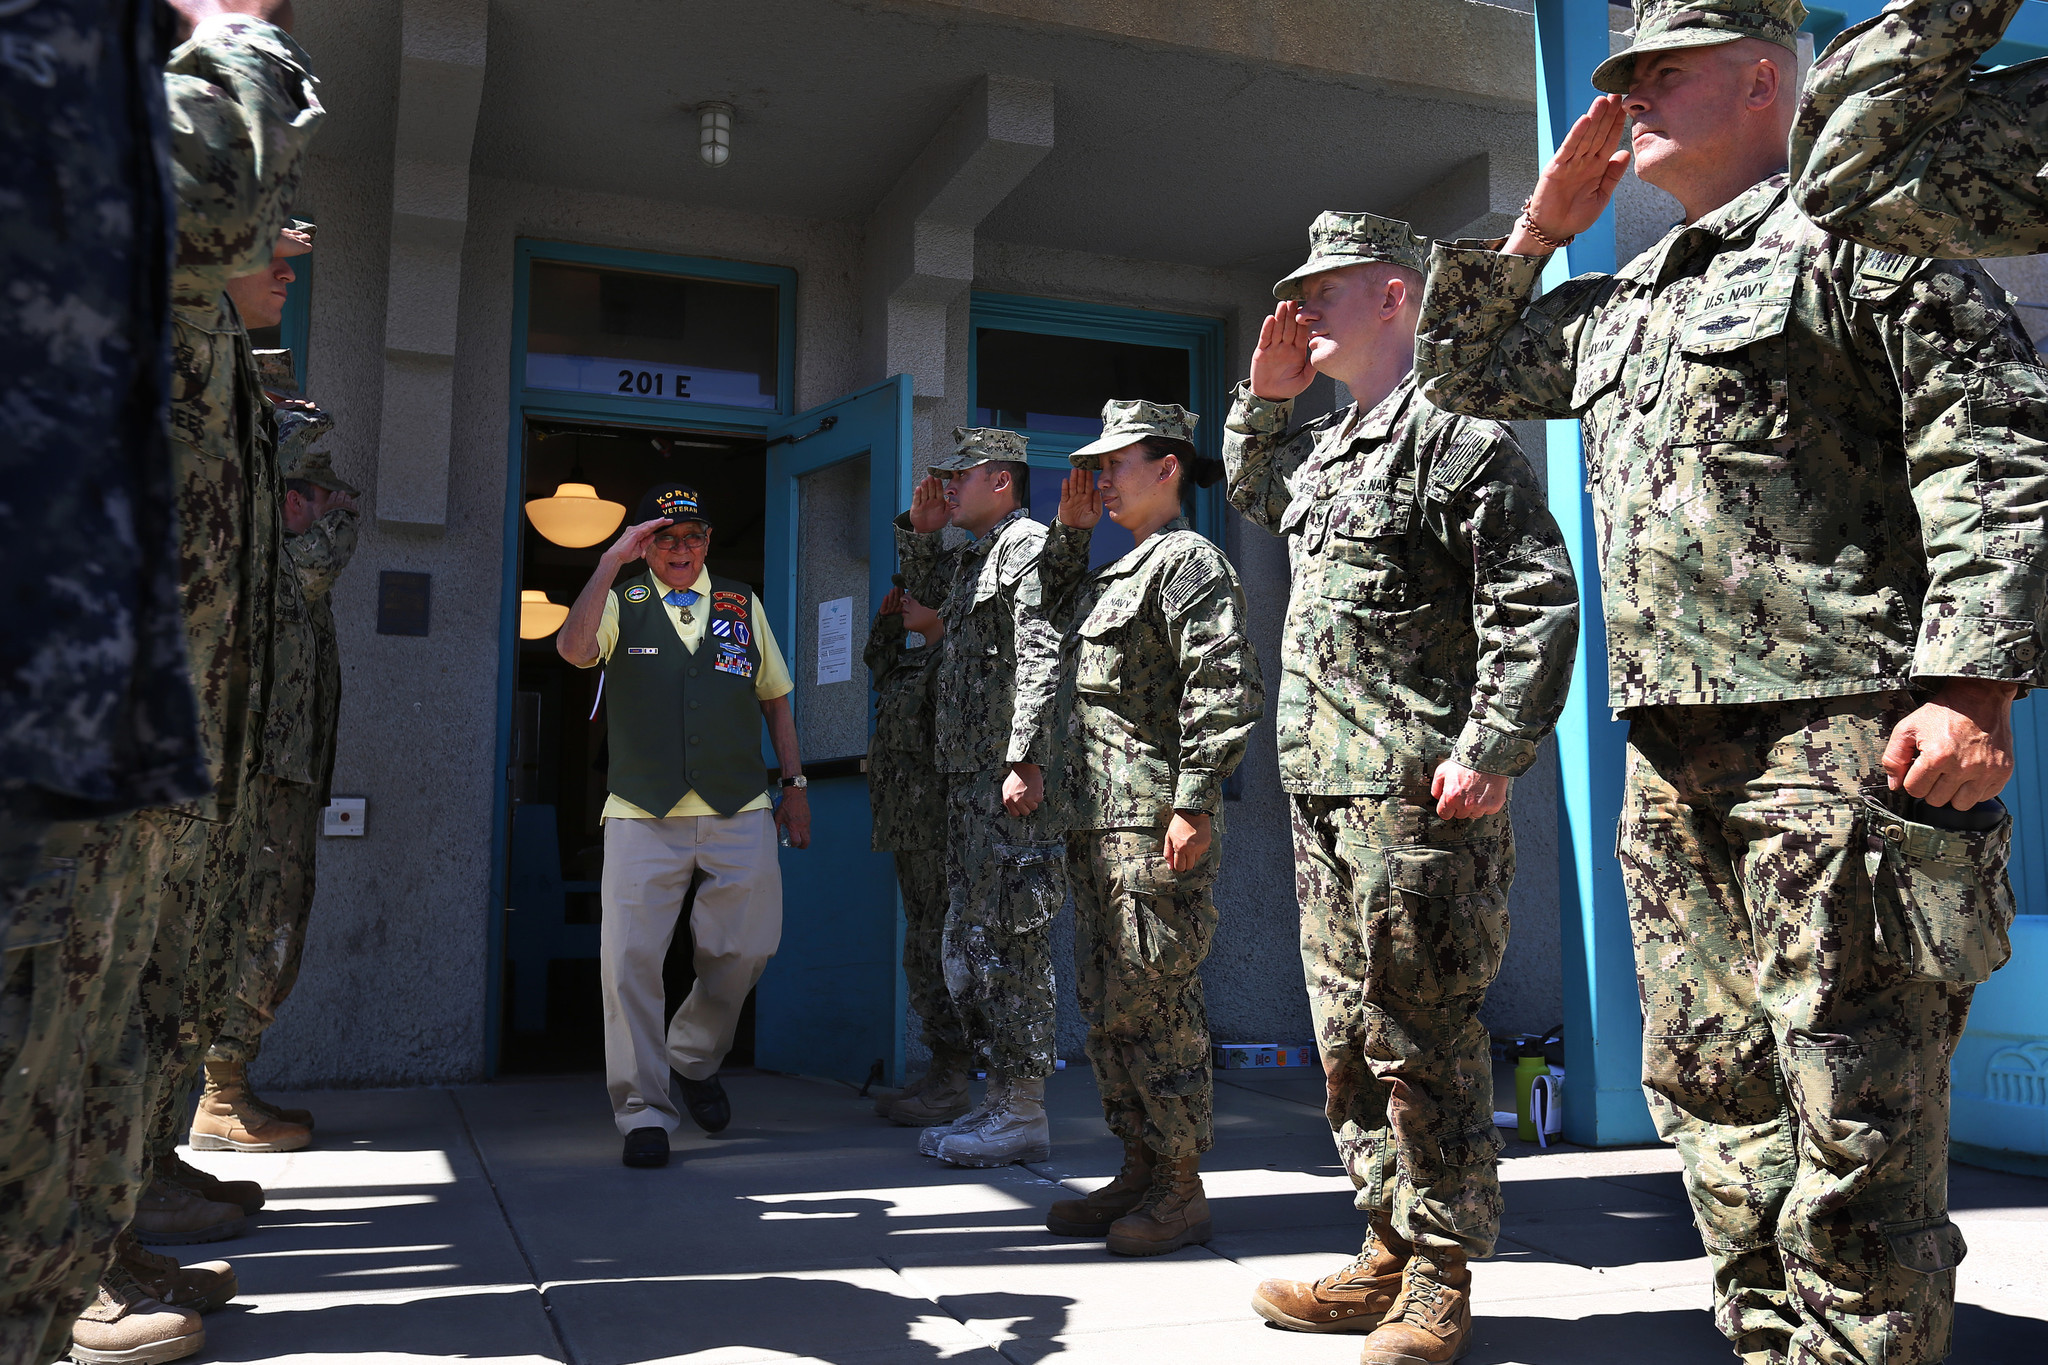 Hiroshi Miyamura is saluted by a group of Navy Seabees after he spoke to them about his war experiences at the Gallup Cultural Center.